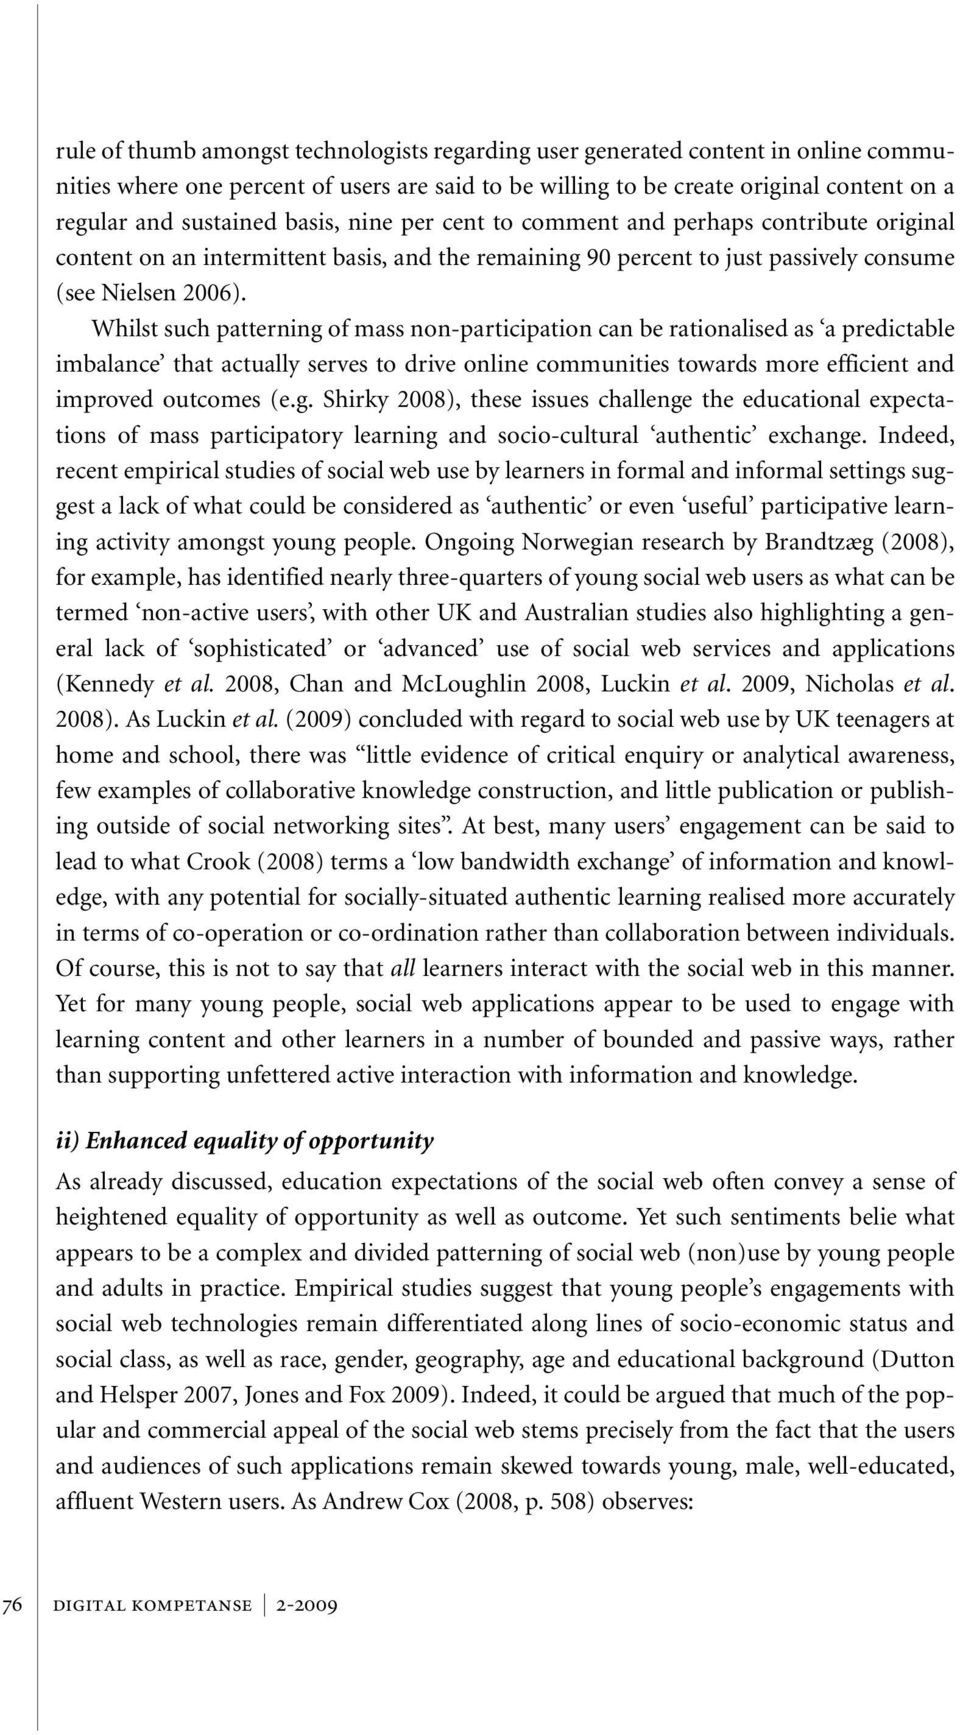 Whilst such patterning of mass non-participation can be rationalised as a predictable imbalance that actually serves to drive online communities towards more efficient and improved outcomes (e.g. Shirky 2008), these issues challenge the educational expectations of mass participatory learning and socio-cultural authentic exchange.